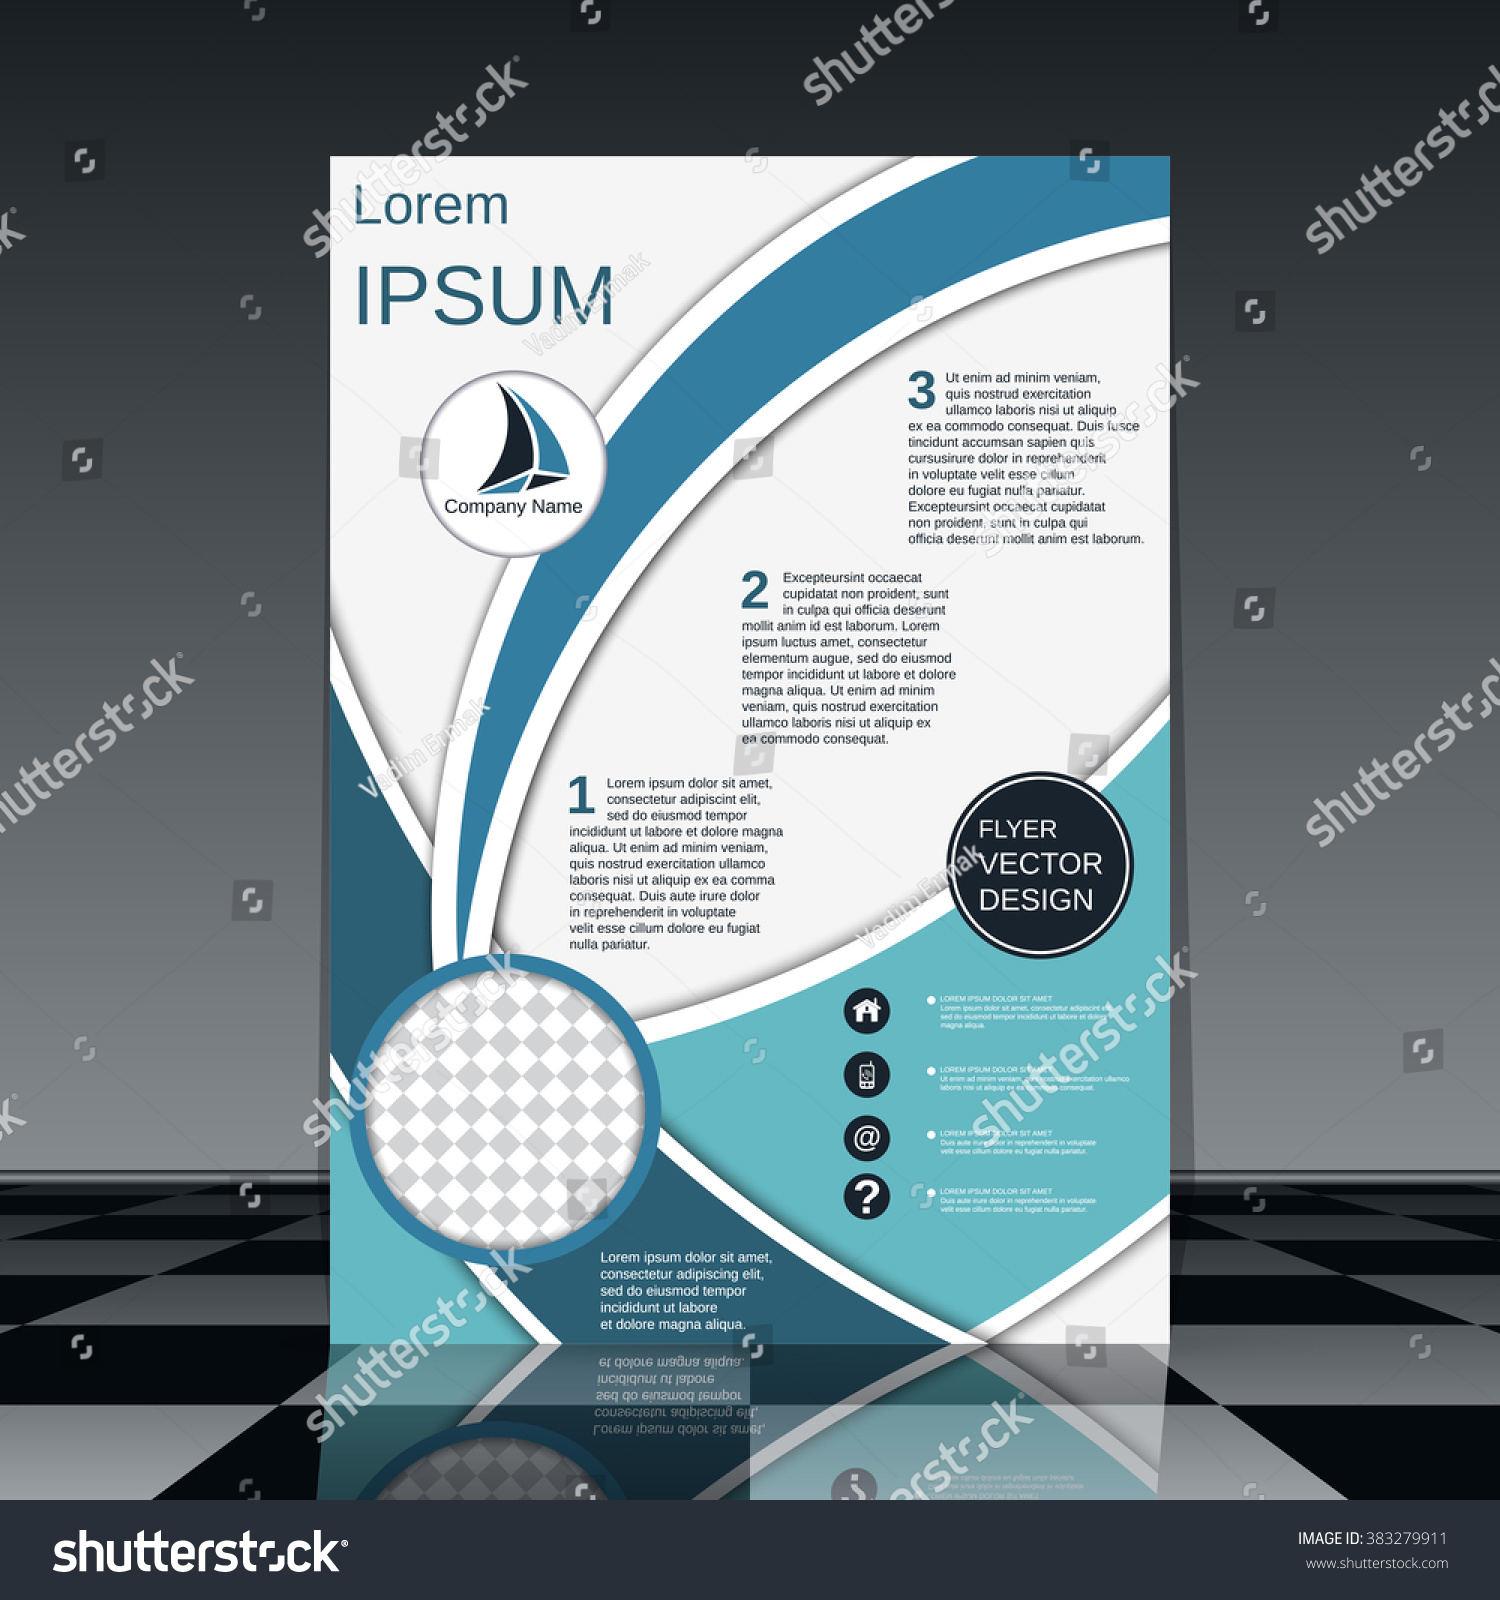 professional general purpose vector flyer template stock vector professional general purpose vector flyer template brochure business report magazine cover placard